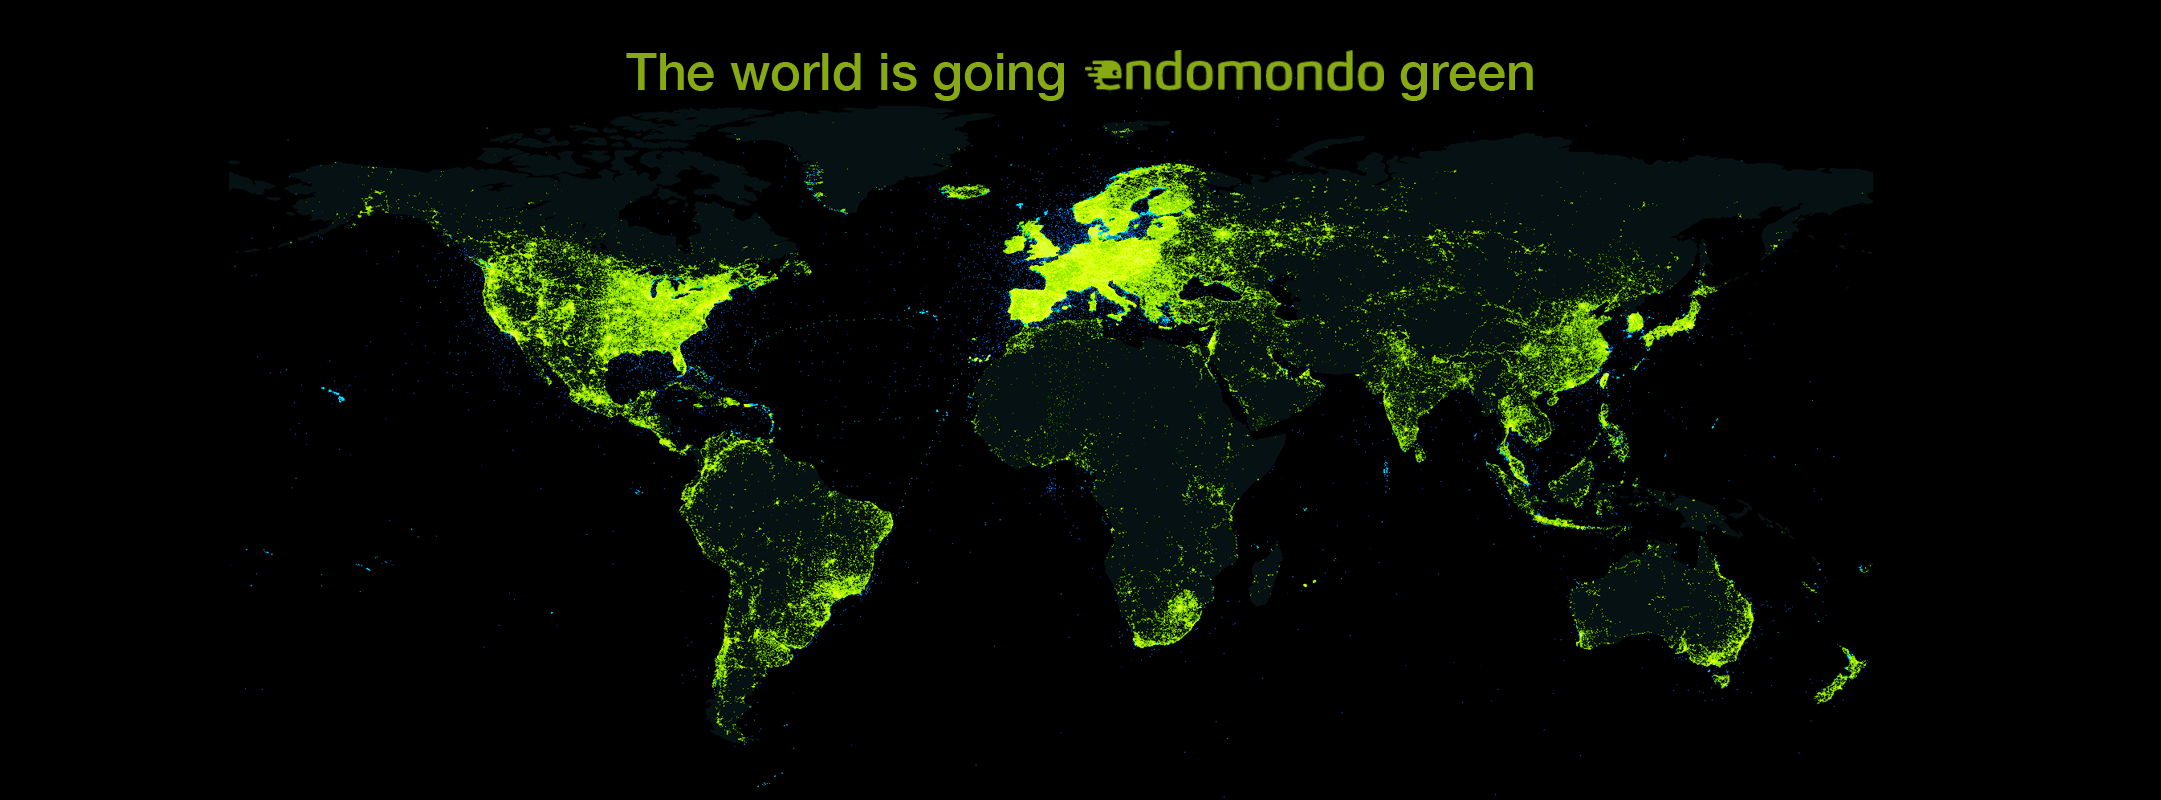 the world is going endomondo green